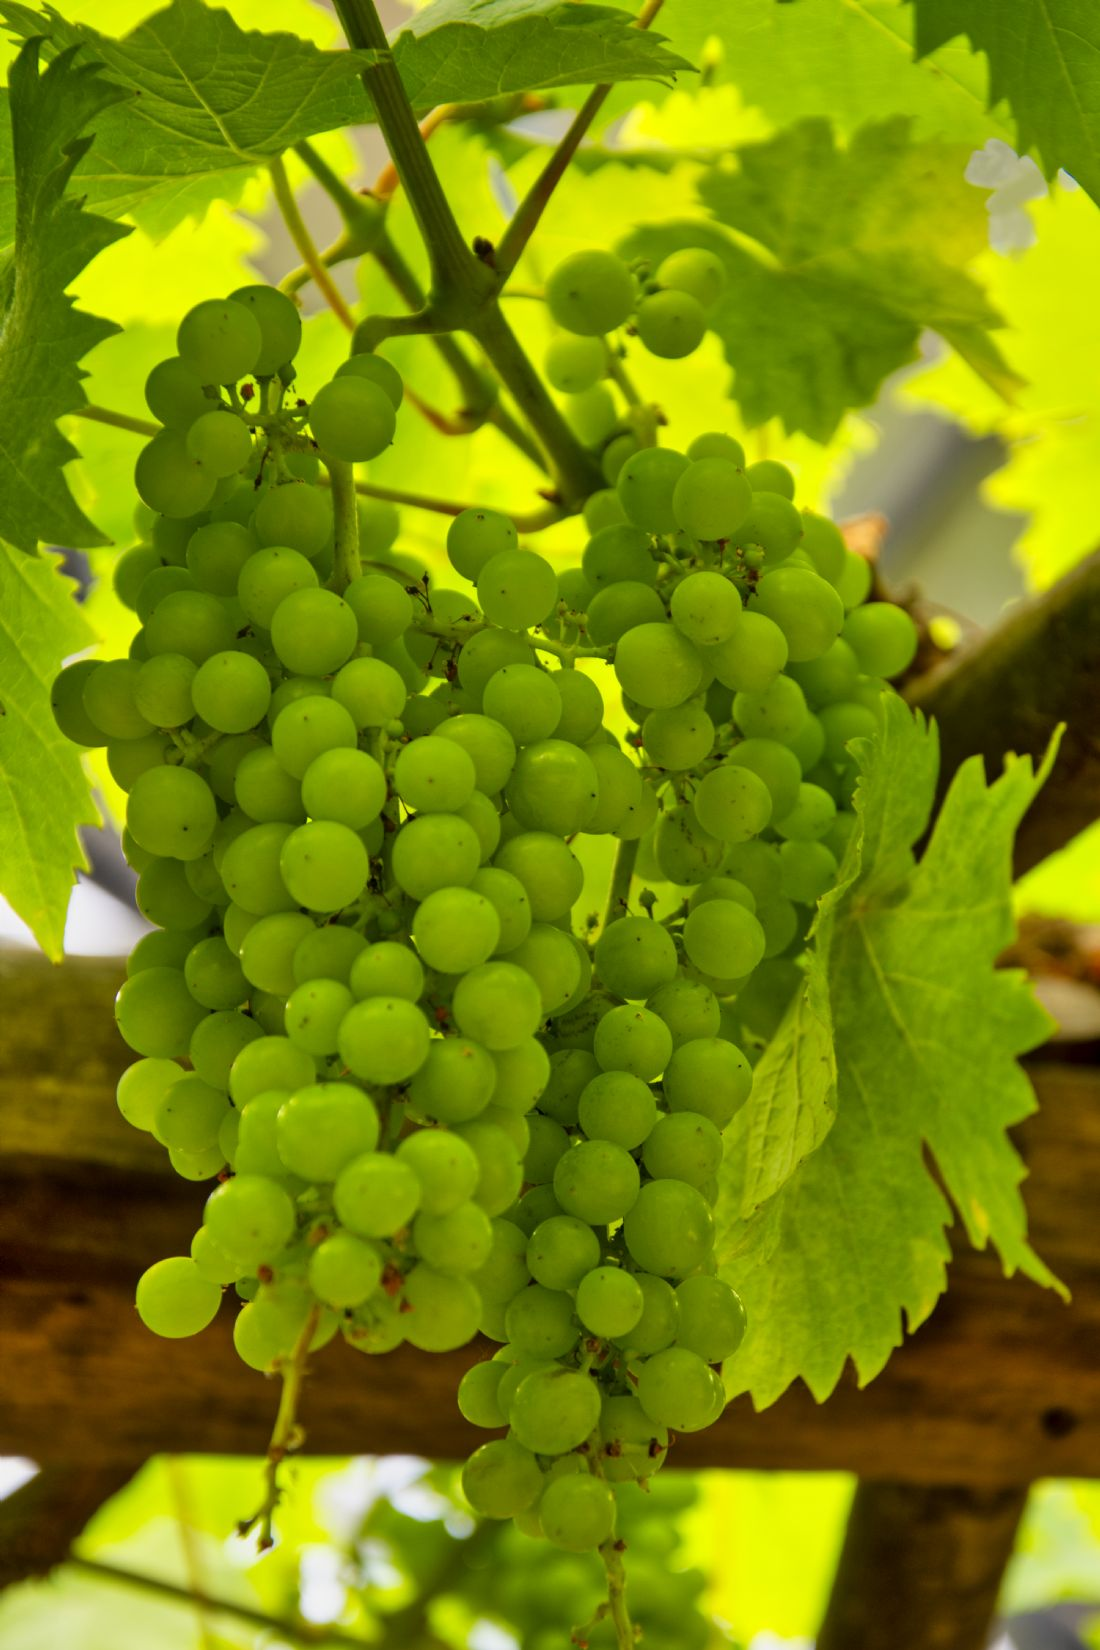 Steve Stamford | Grapes on the vine